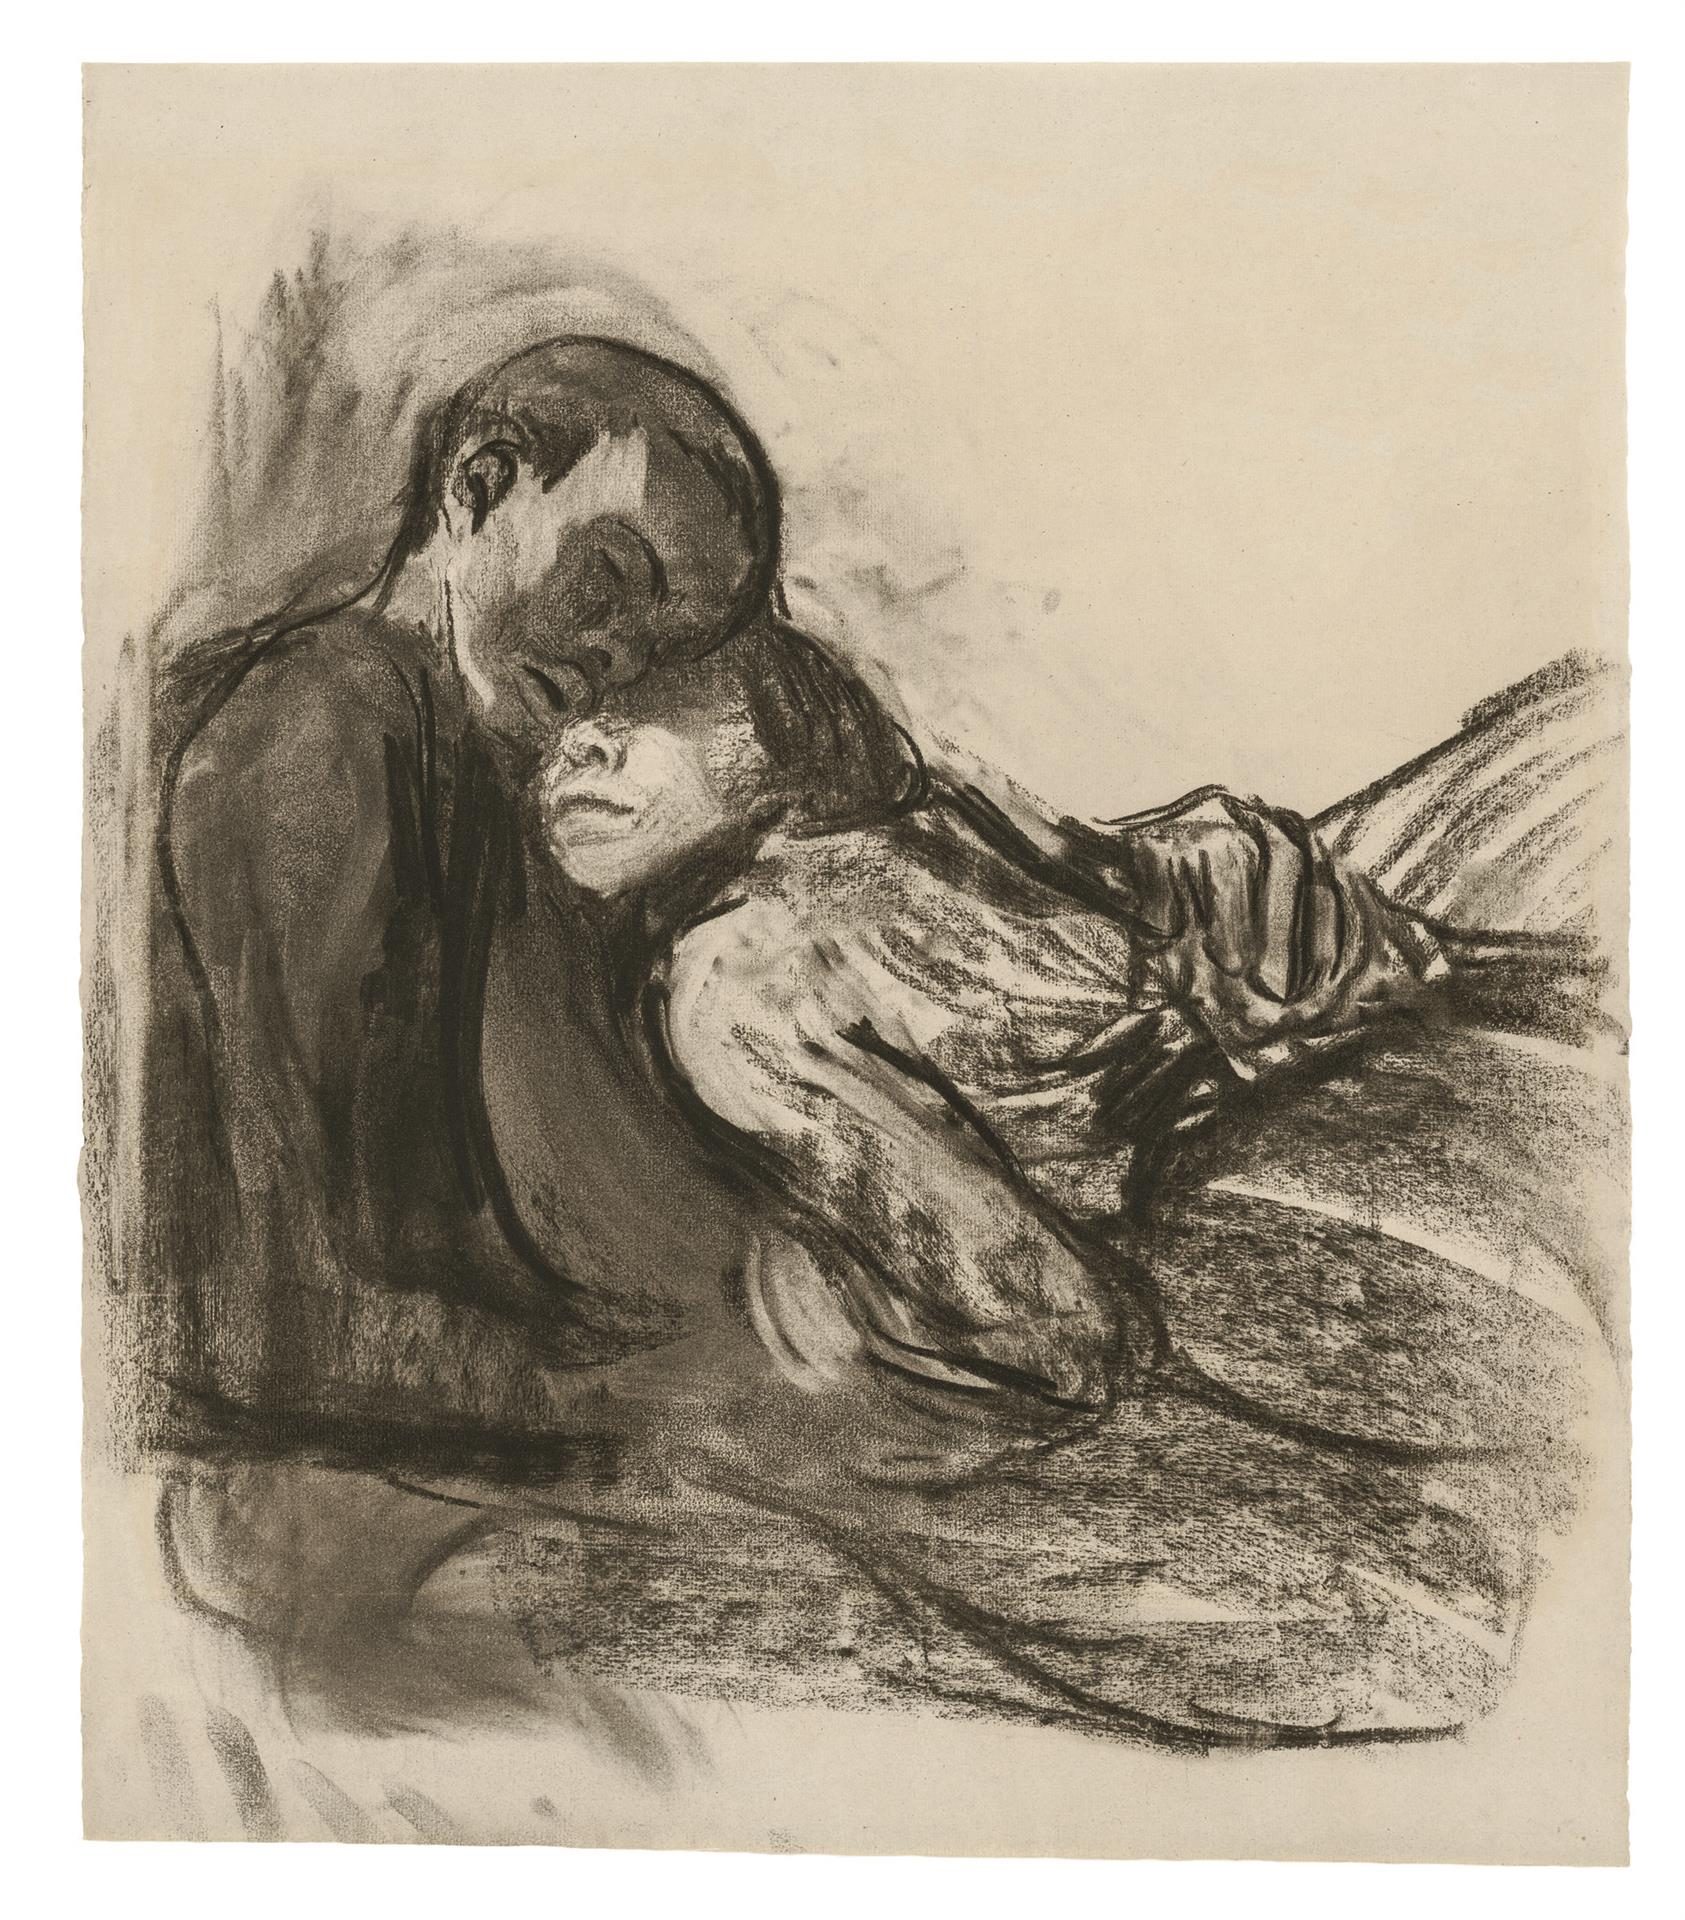 Käthe Kollwitz, Pair of Lovers, huddling against each other, 1909/1910, charcoal, blotted, on grey Ingres paper, NT 559, Cologne Kollwitz Collection © Käthe Kollwitz Museum Köln